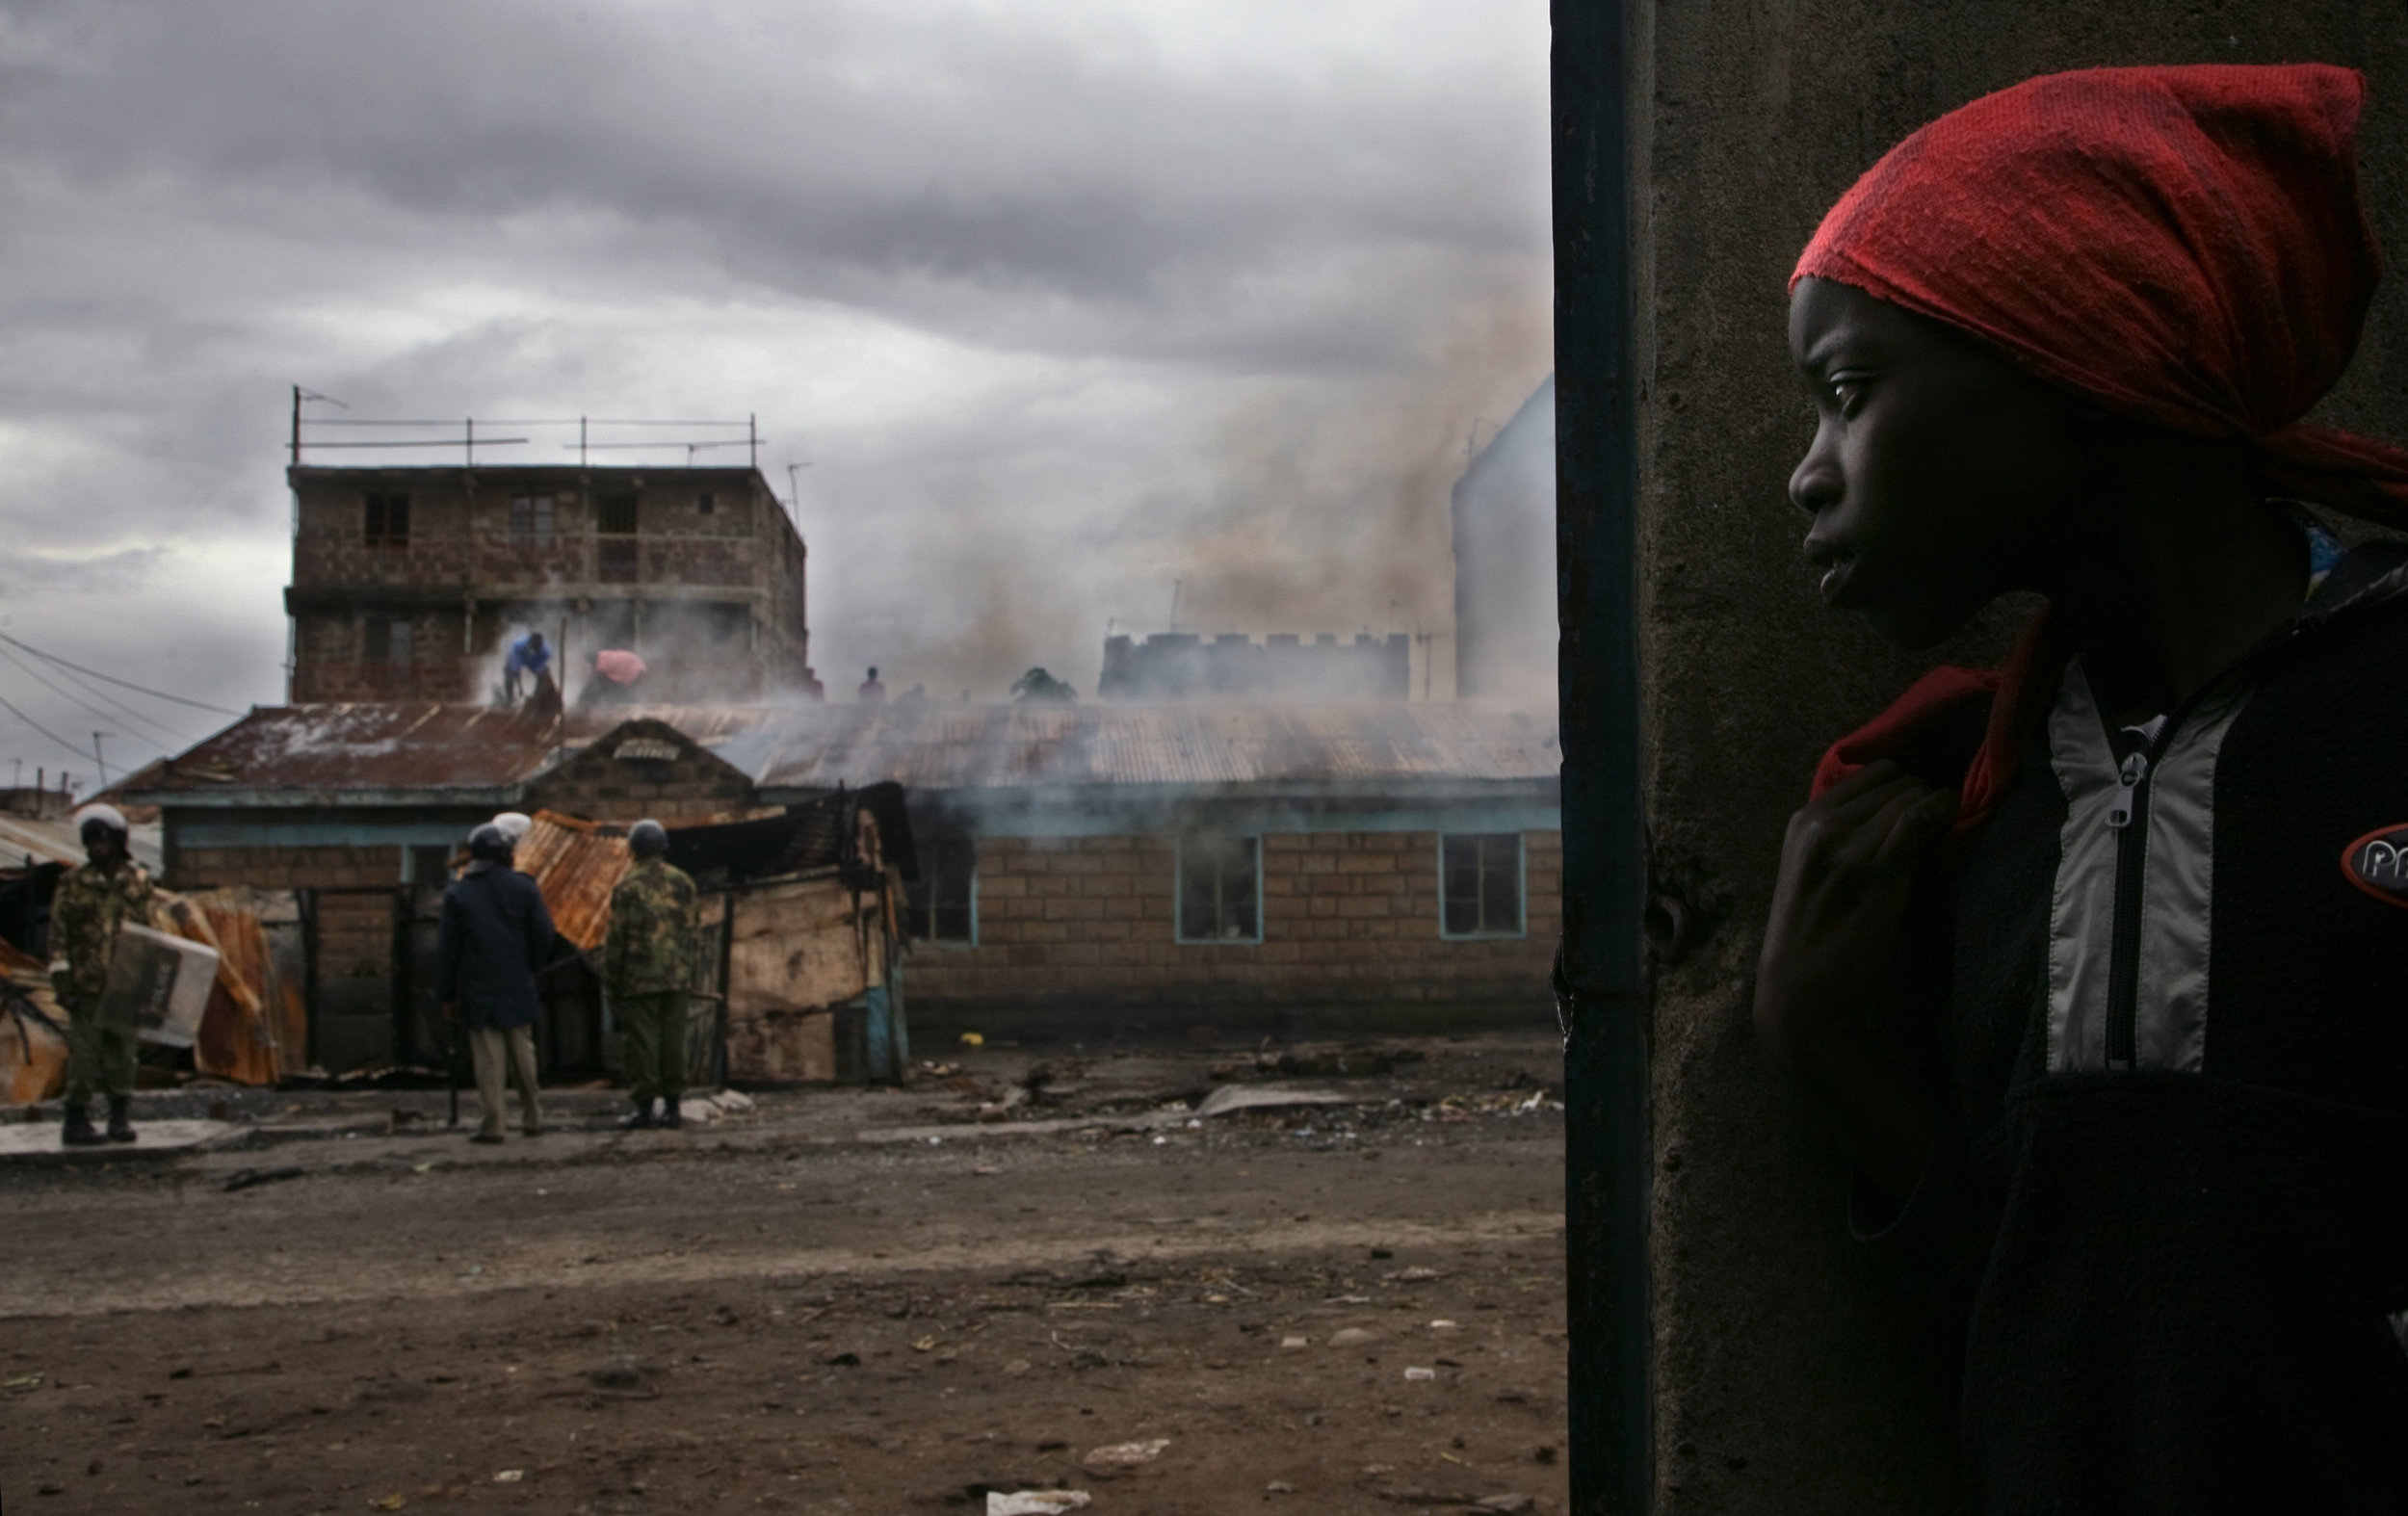 Police and residents try to quell a fire set in the Mathare slum in Nairobi as ethnic violence rages on.